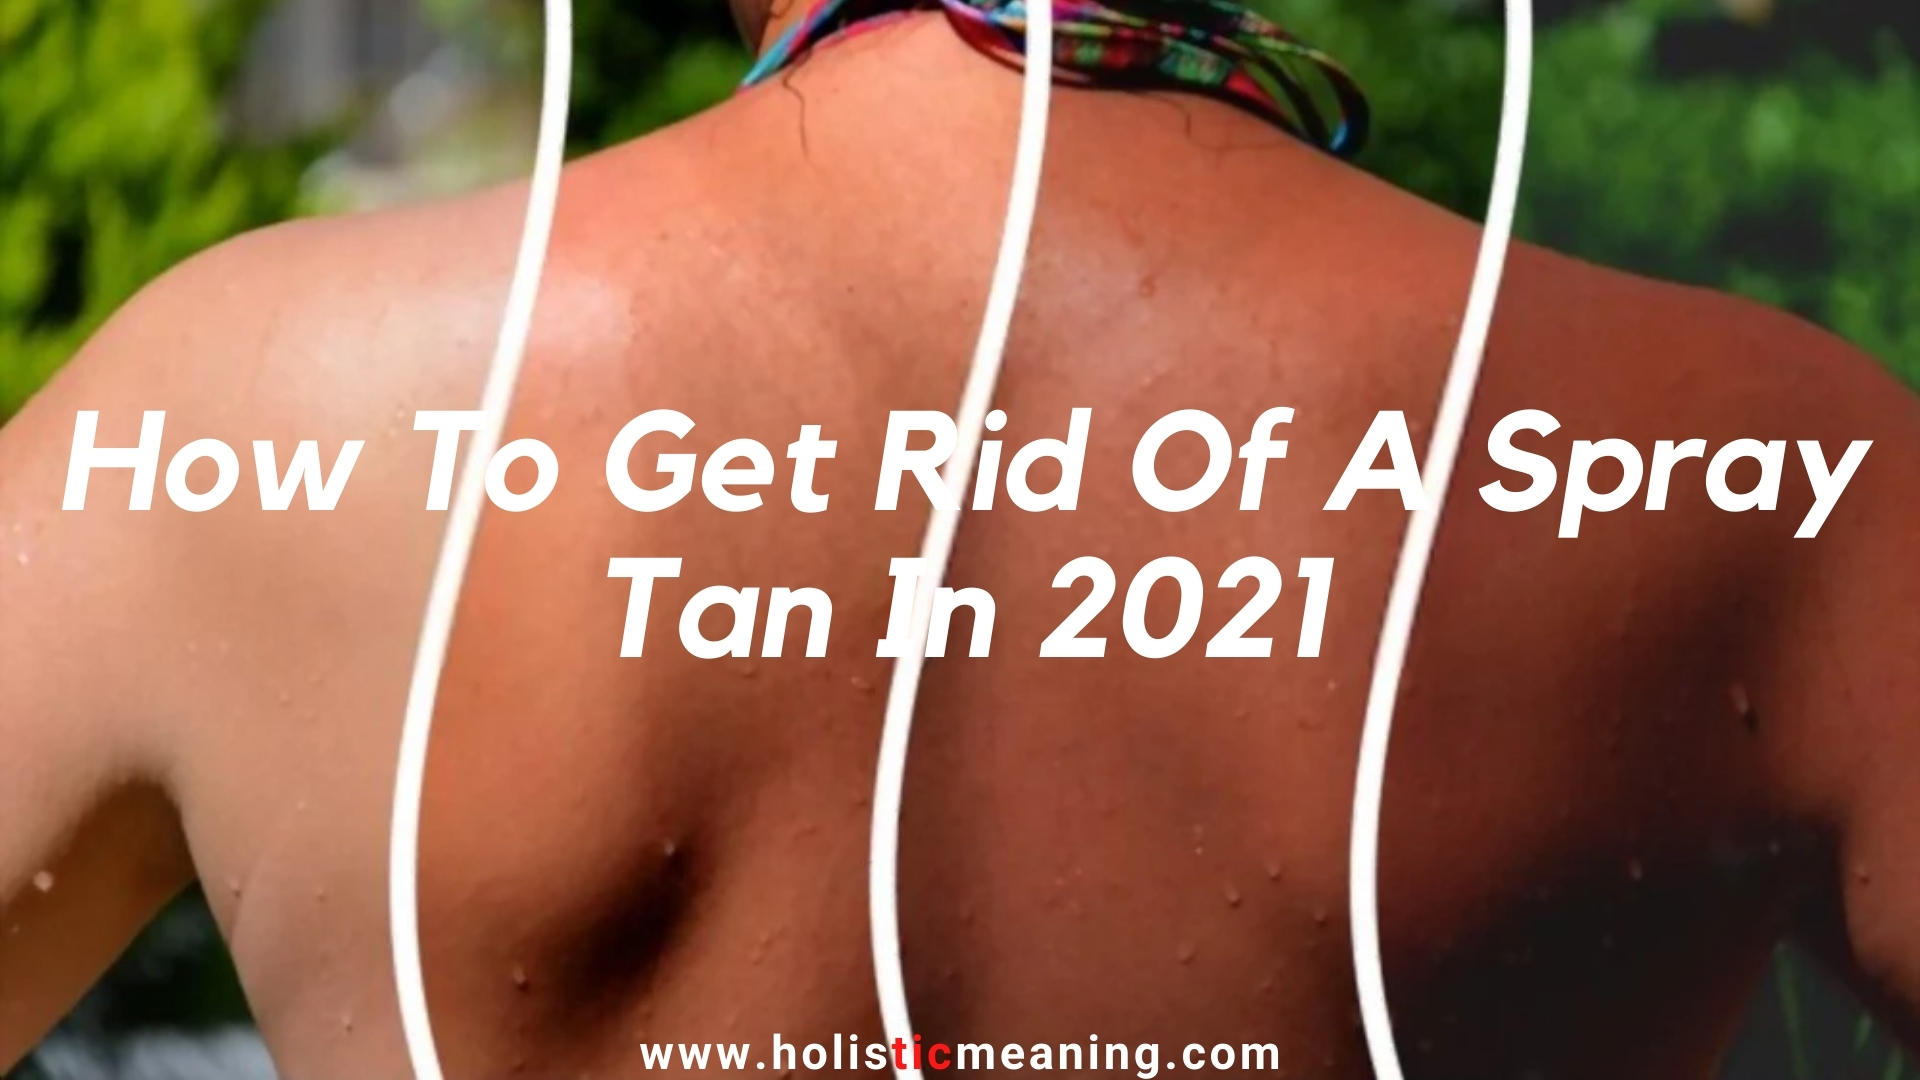 How To Get Rid Of A Spray Tan In 2021